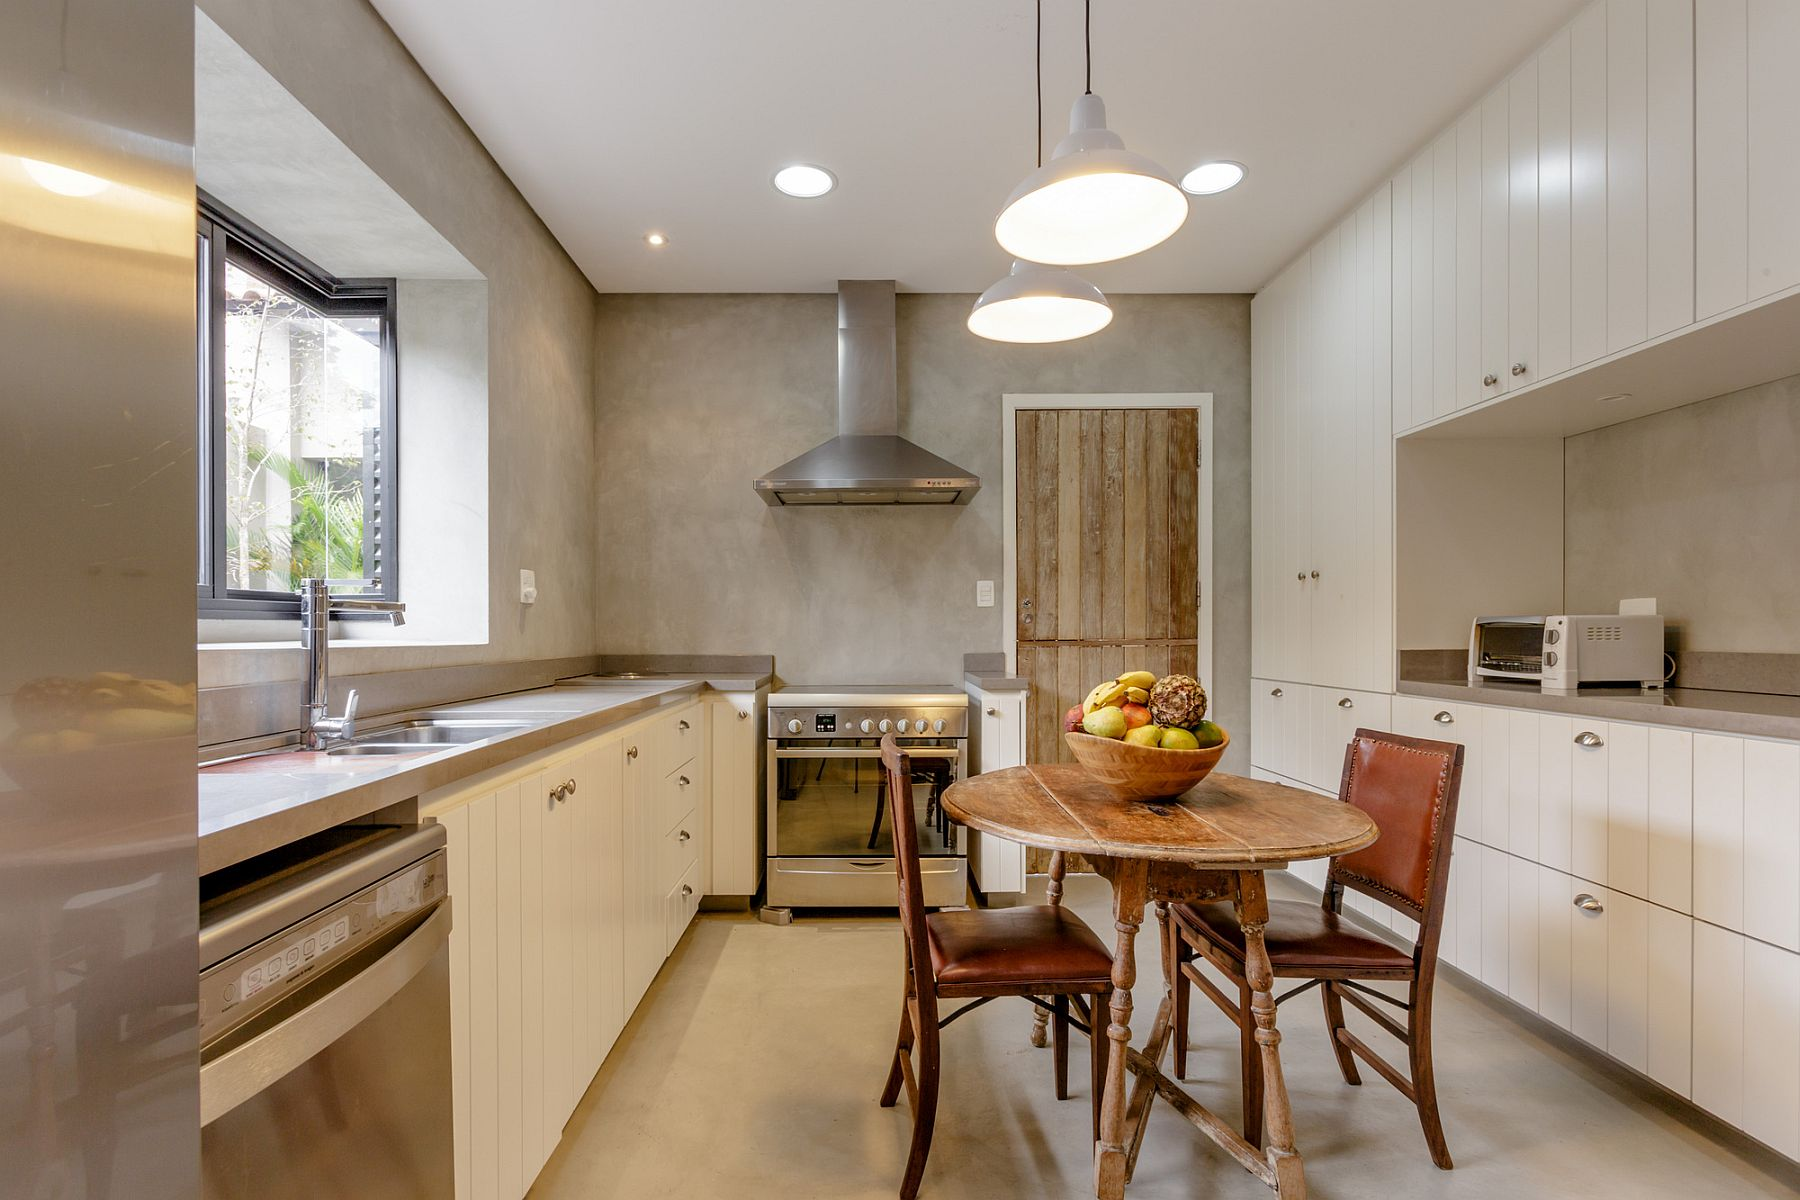 Kitchen with neutral color palette and cement walls